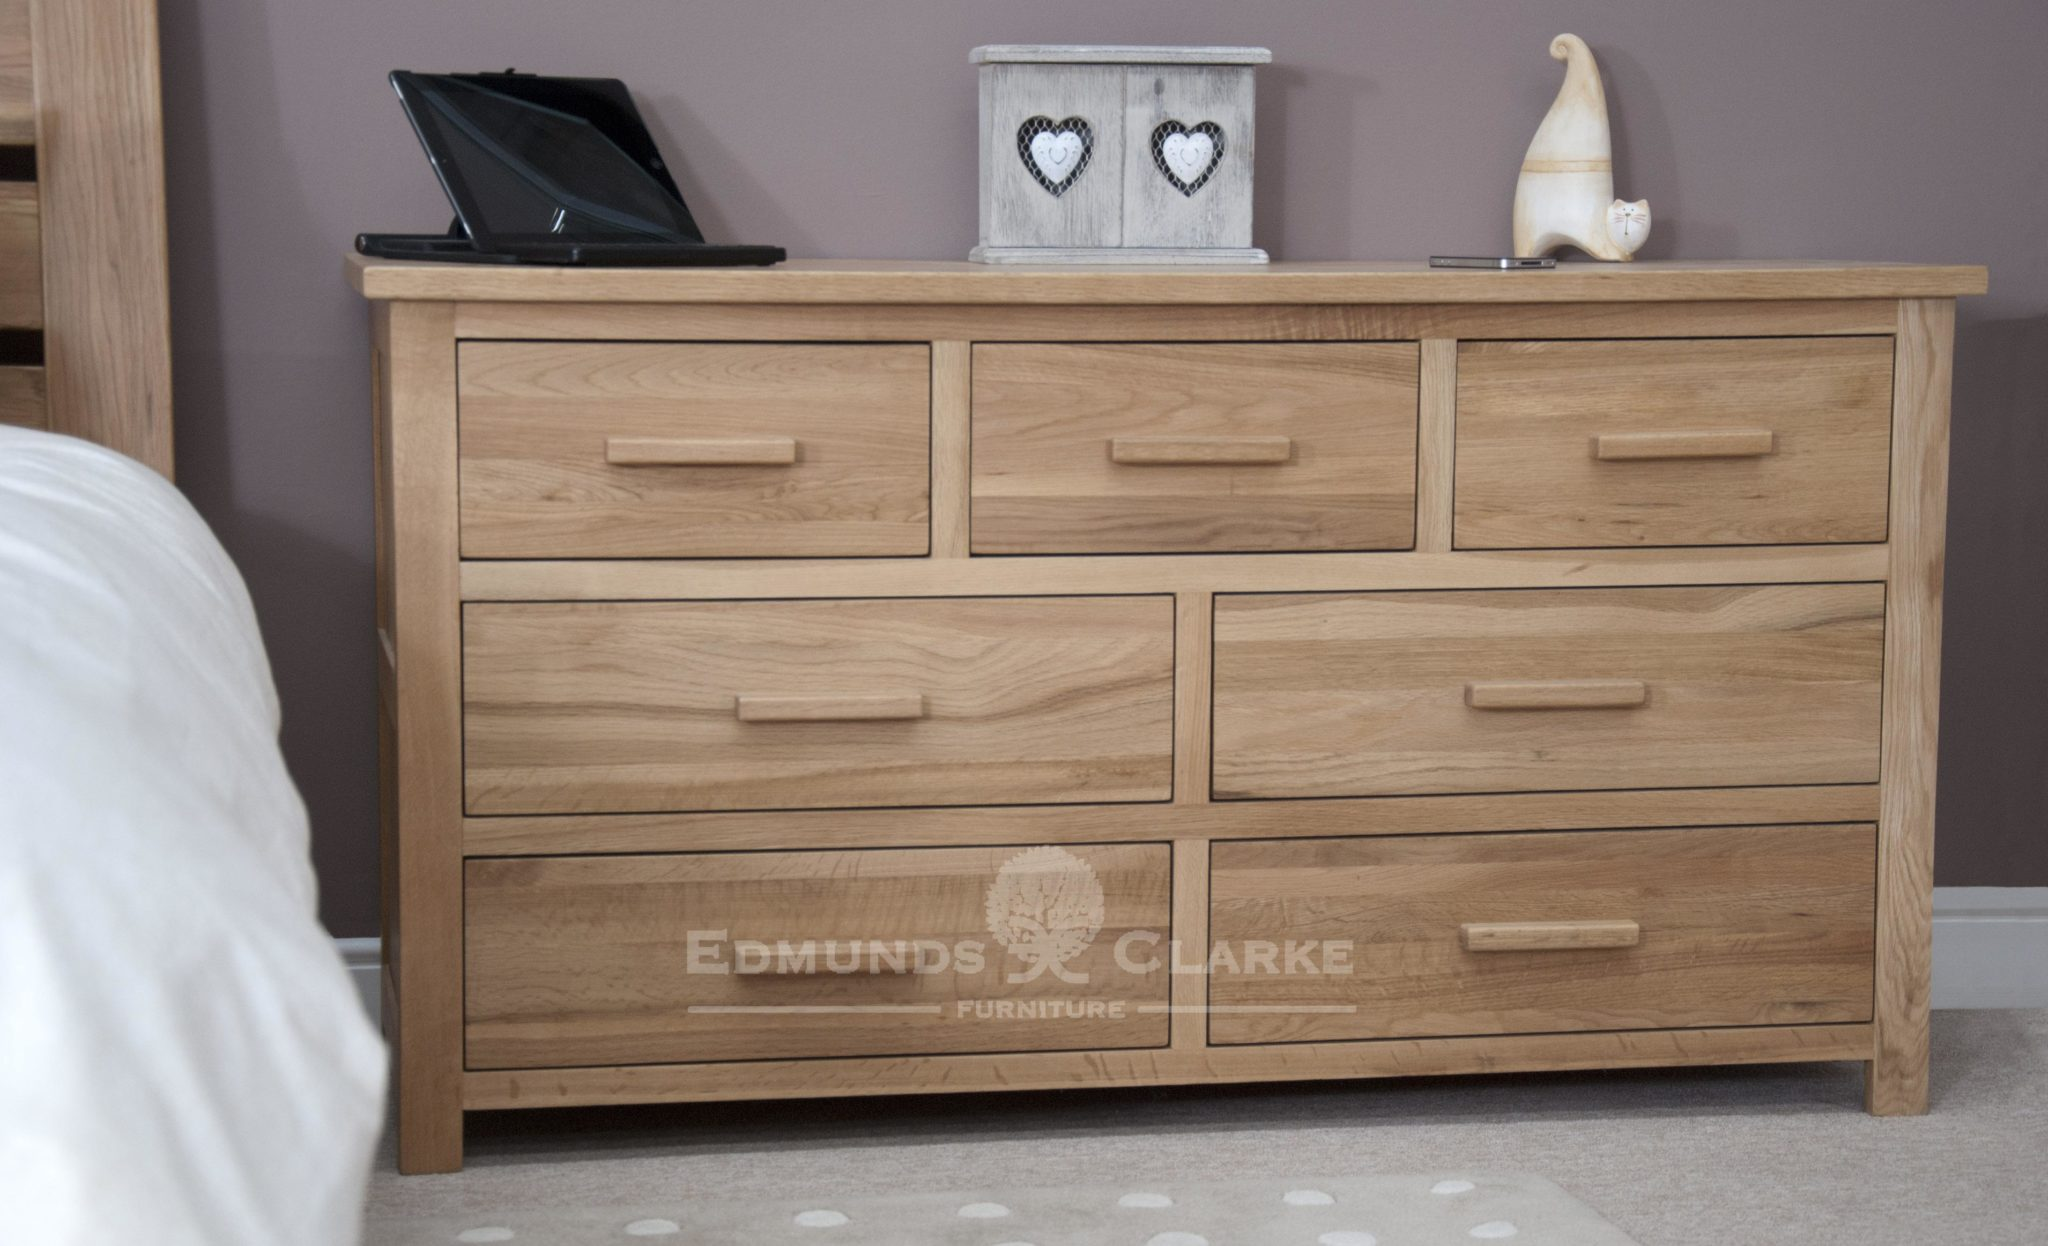 Bury Solid wide chest of drawers with 7 drawers and metal or wood handles in light lacquer finish